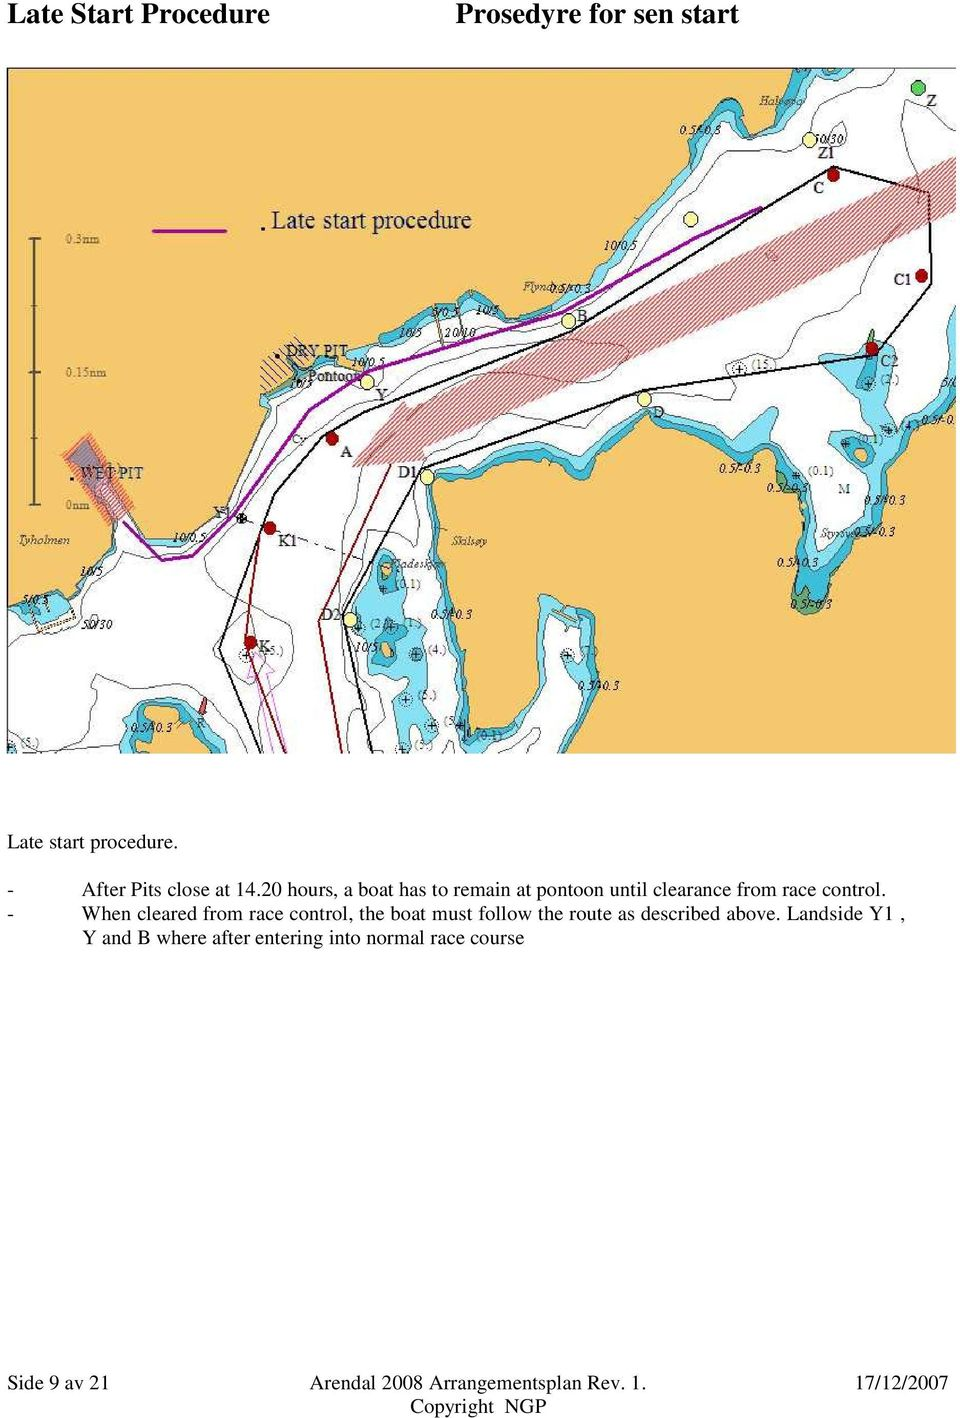 - When cleared from race control, the boat must follow the route as described above.